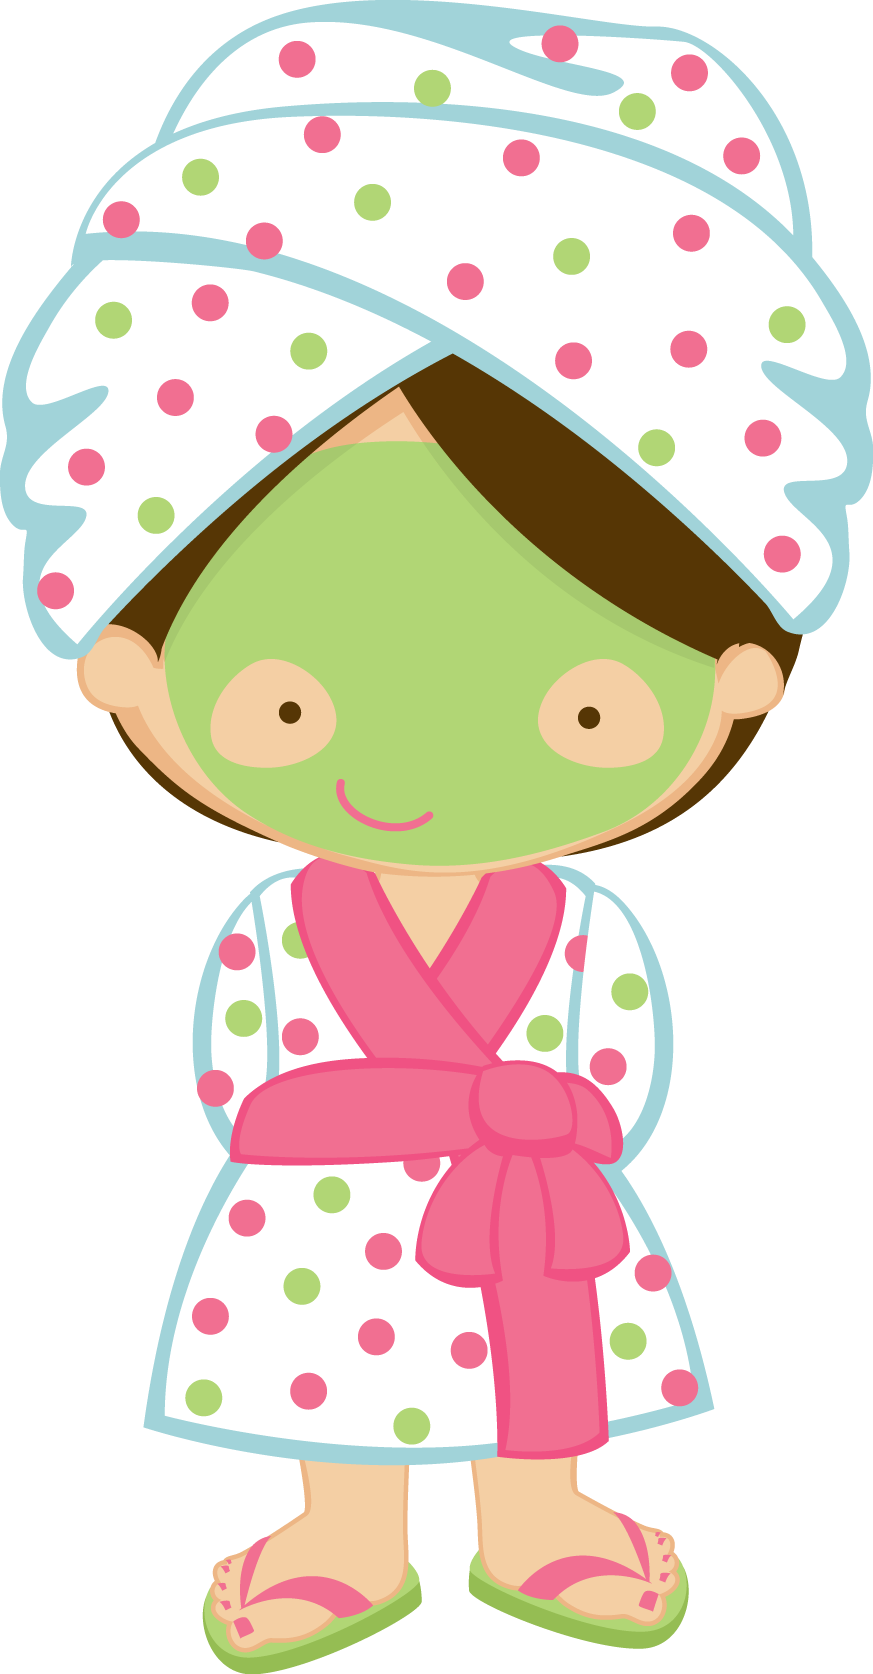 Holidays clipart pajama party. Zwd spaflipflops spagirl png